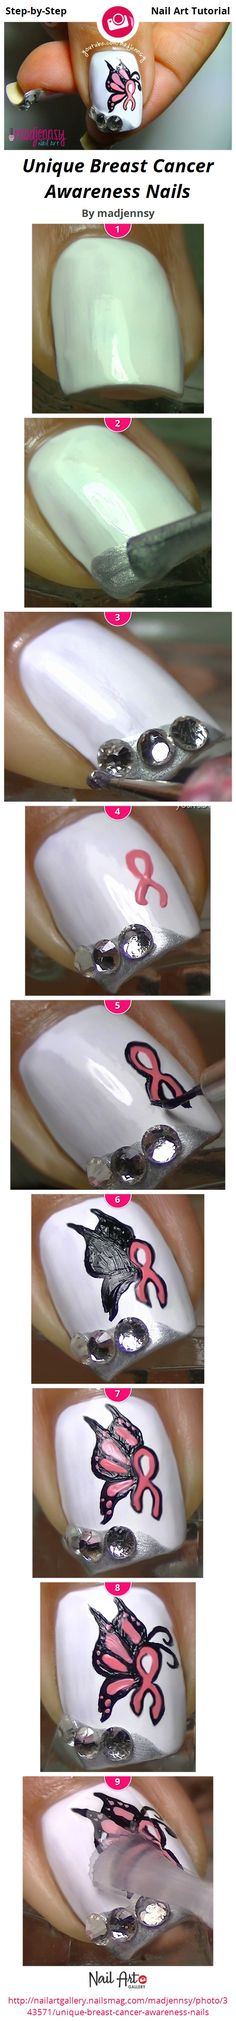 Unique Breast Cancer Awareness Nails by madjennsy - Nail Art Gallery Step-by-Step Tutorials nailartgallery.nailsmag.com by Nails Magazine www.nailsmag.com #nailart